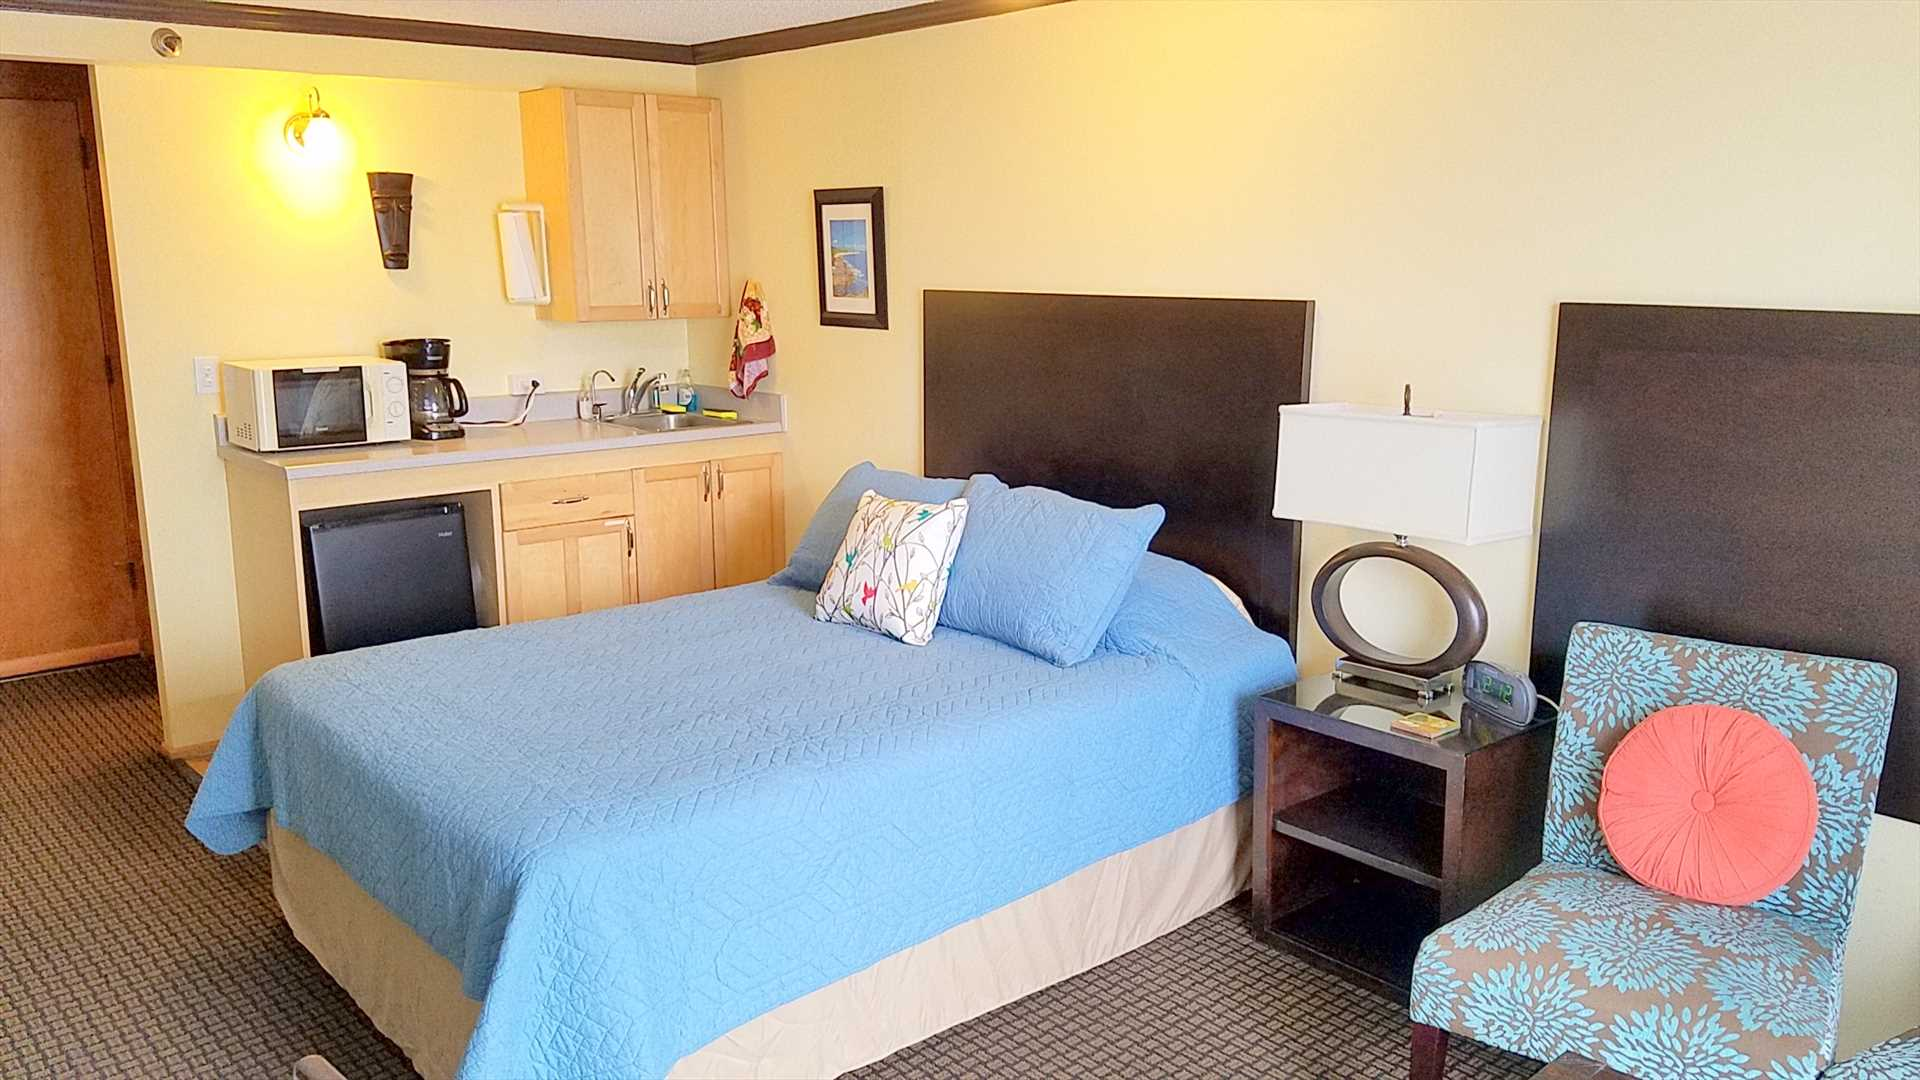 The unit is spacious and comfortable and includes everything needed for an enjoyable stay